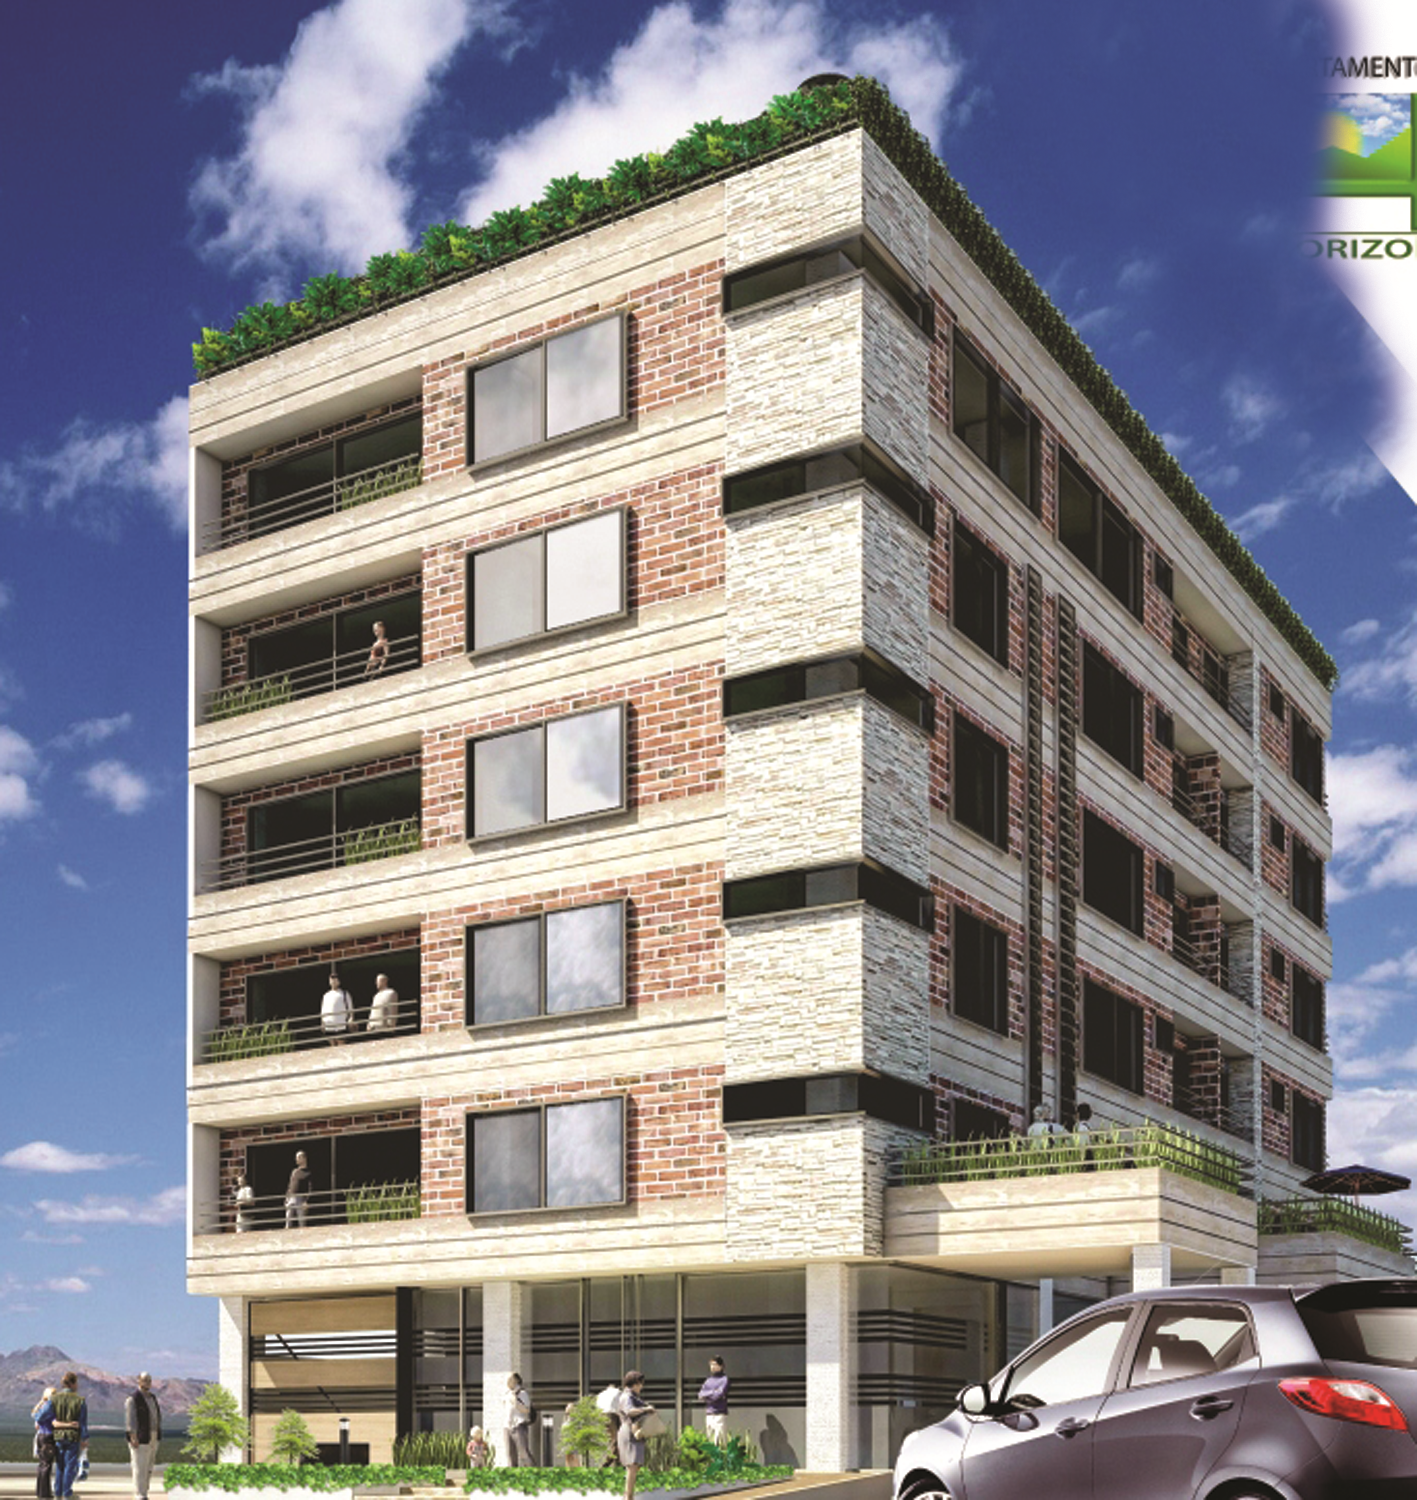 130510 - GM - PROYECTOS - FOTOS - EDIFICIO HORIZON png.png